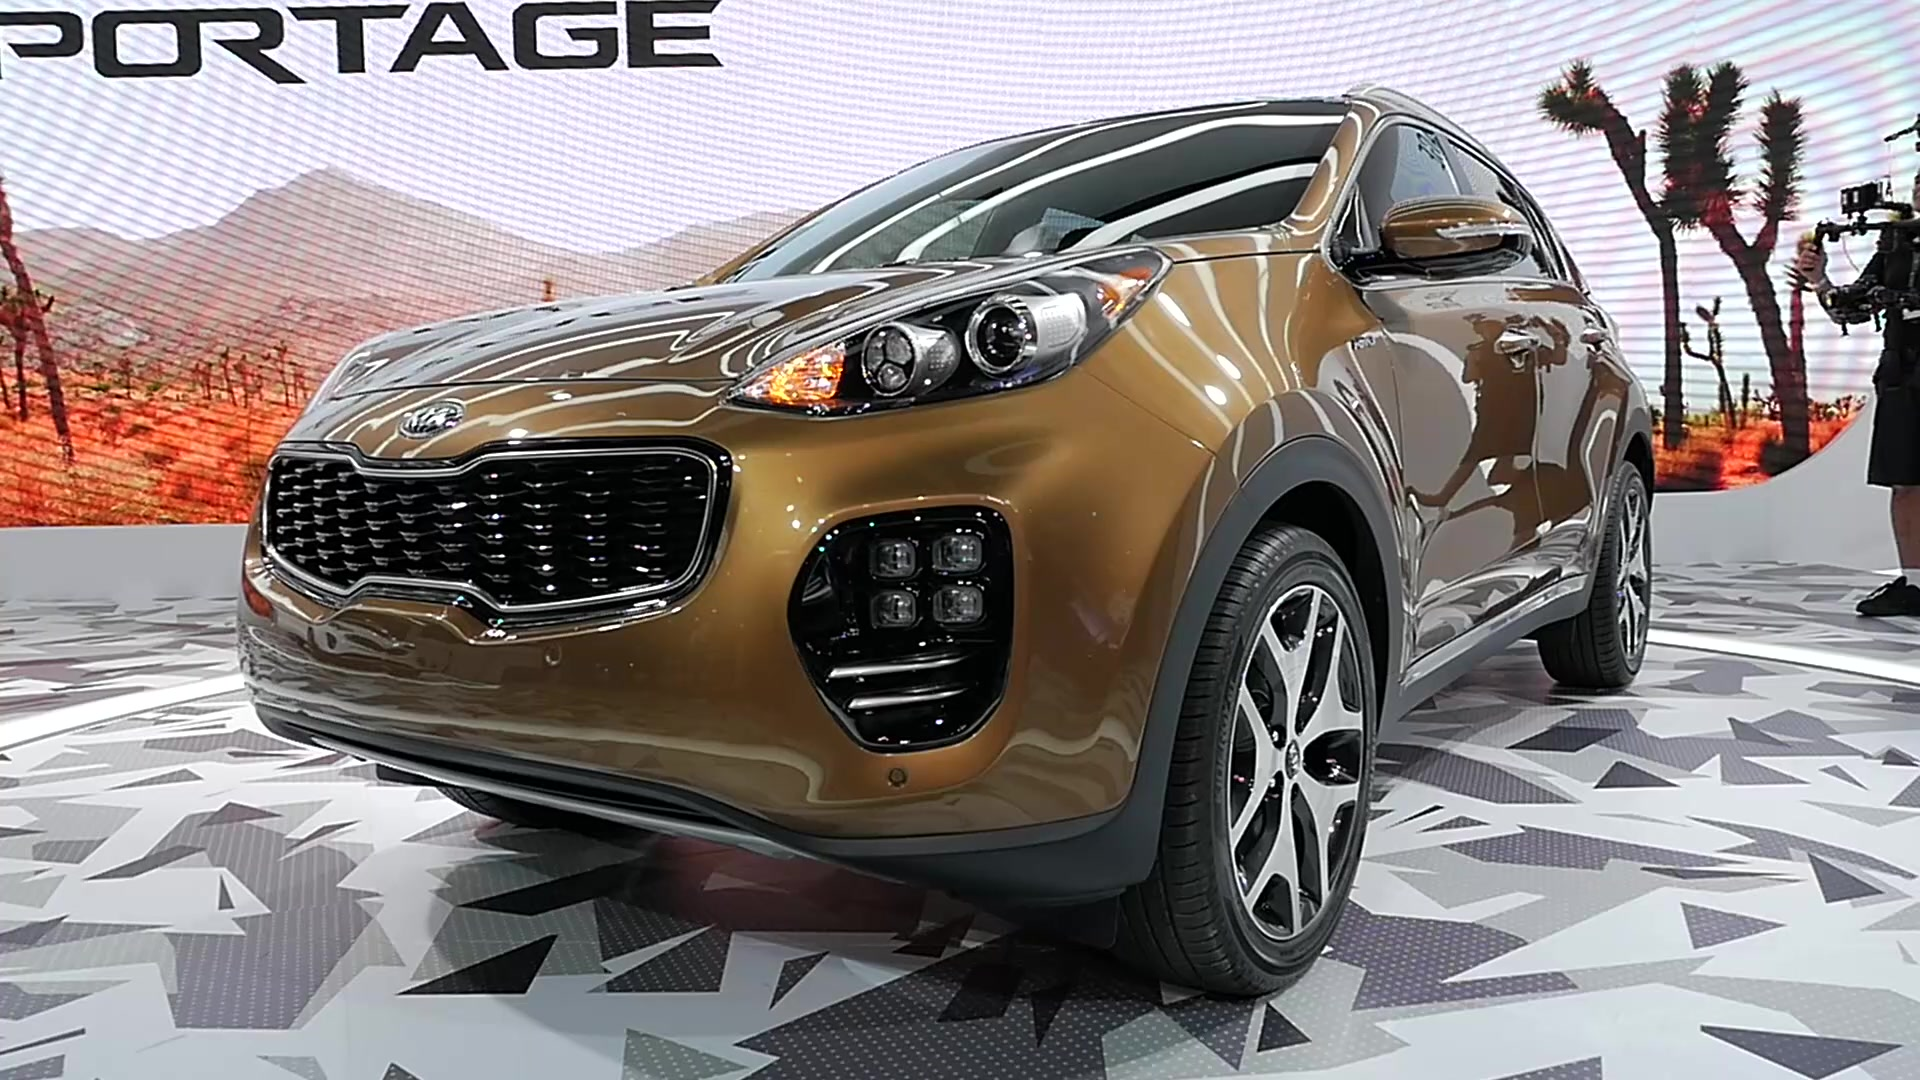 56509f38e4b0a81533bcc4de_1_v1 2017 kia sportage gets bigger and gains bulbous new duds autoblog 2017 Kia Sportage Oil Change at crackthecode.co